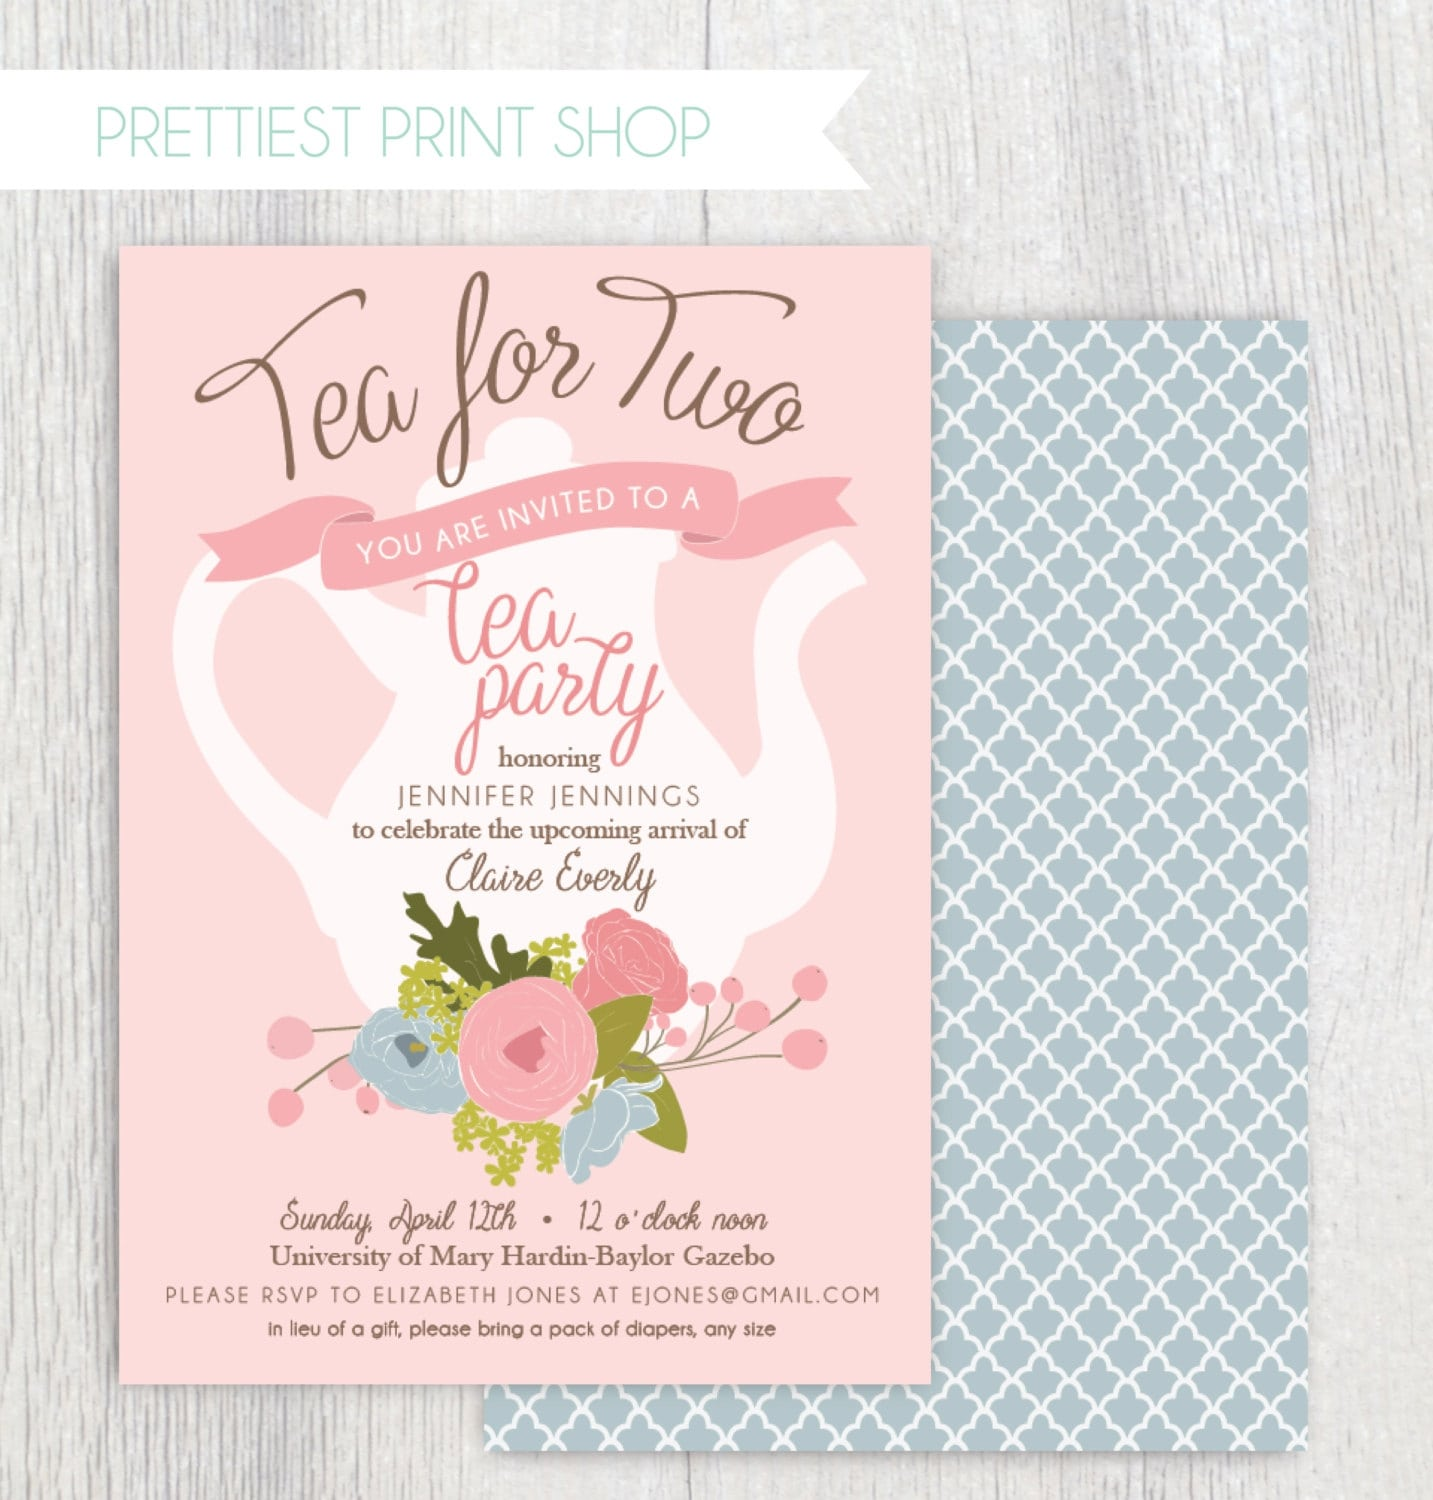 11th Birthday Party Invitation Wording Awesome Printable Tea Party